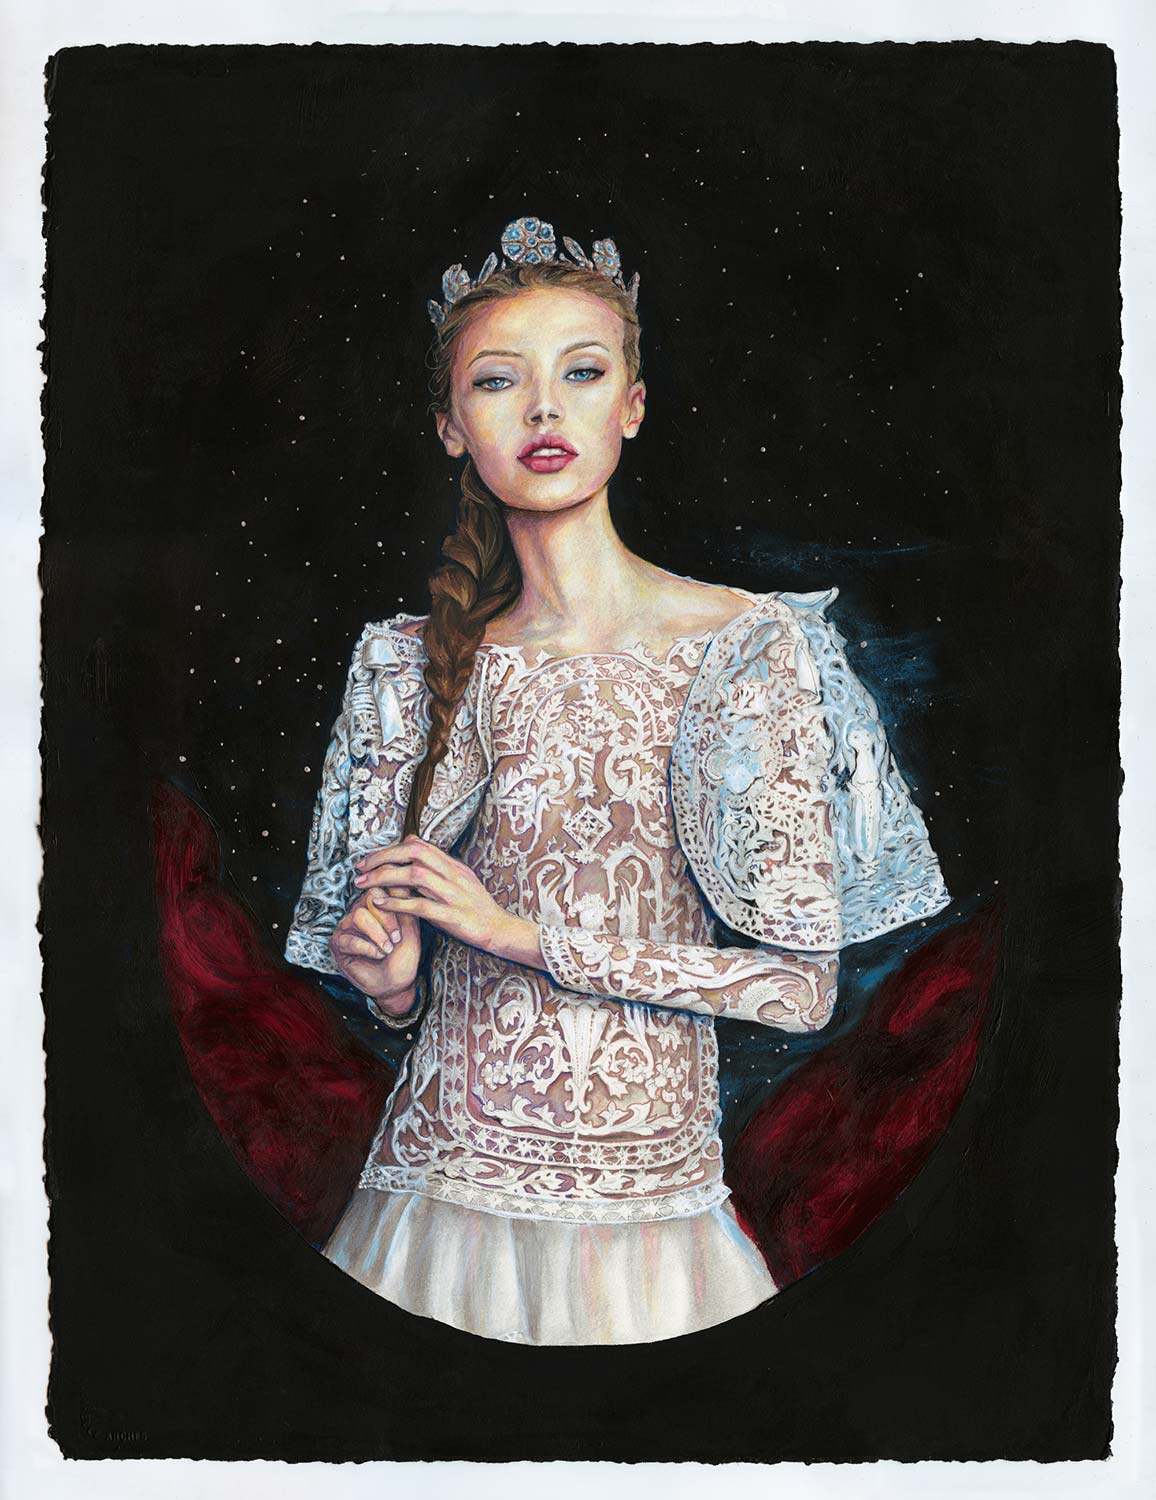 Artist Danny Roberts Fashion illustration of Mona Johannessen as princess Josette RoyalBall Marchesa Painting.